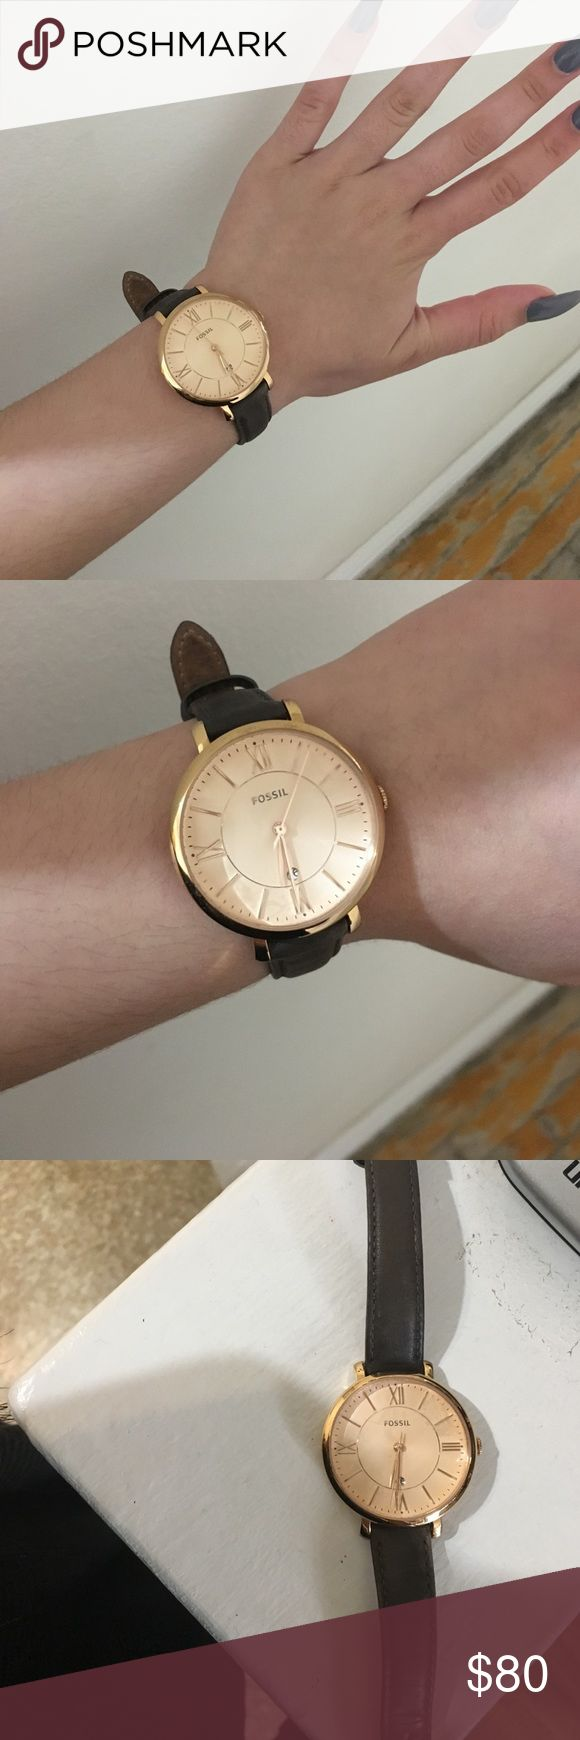 """Fossil Jacqueline Gray Leather Watch Fossil stainless steel women's watch. Only used about three times and has absolutely no signs of wear. Has a personalized note in the back that says """"soul in the sky"""". Genuine leather. Willing to negotiate price. Fossil Accessories Watches"""